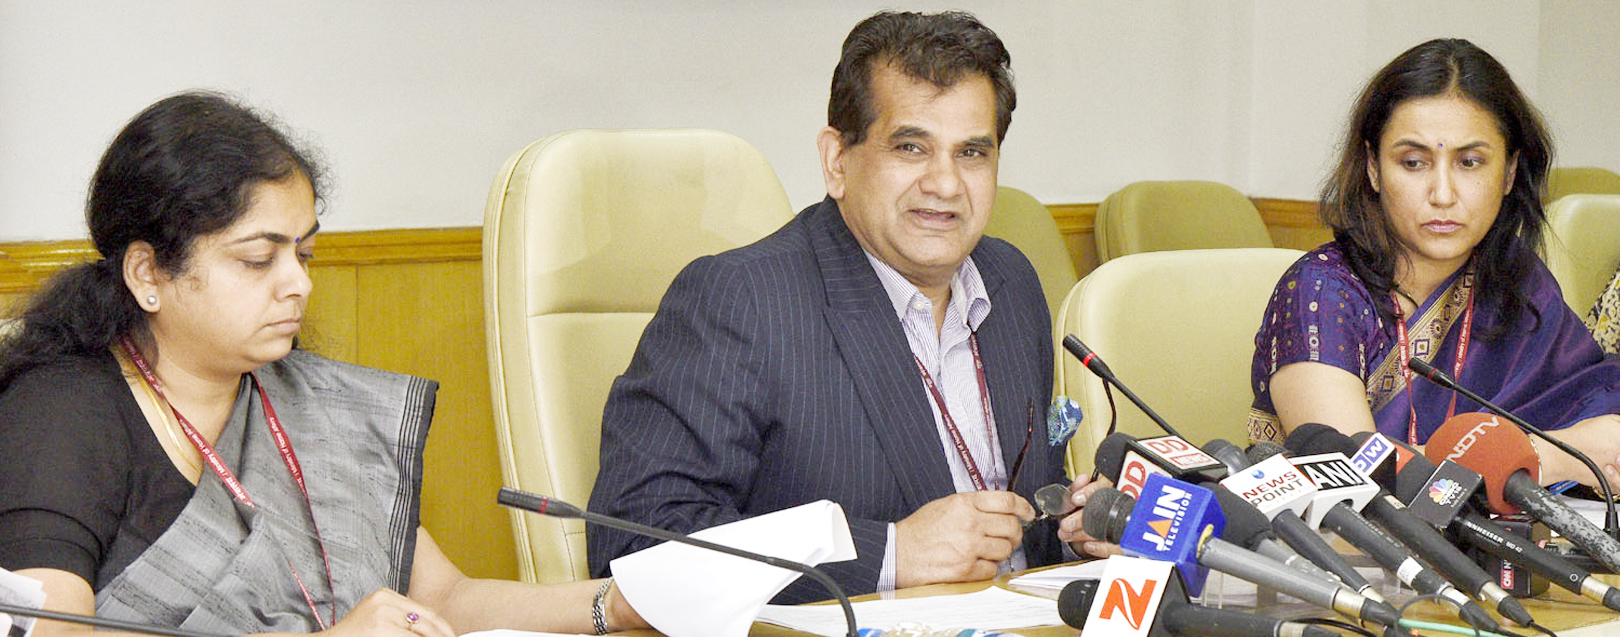 Infra sector has suffered in India due to under-investment: Amitabh Kant